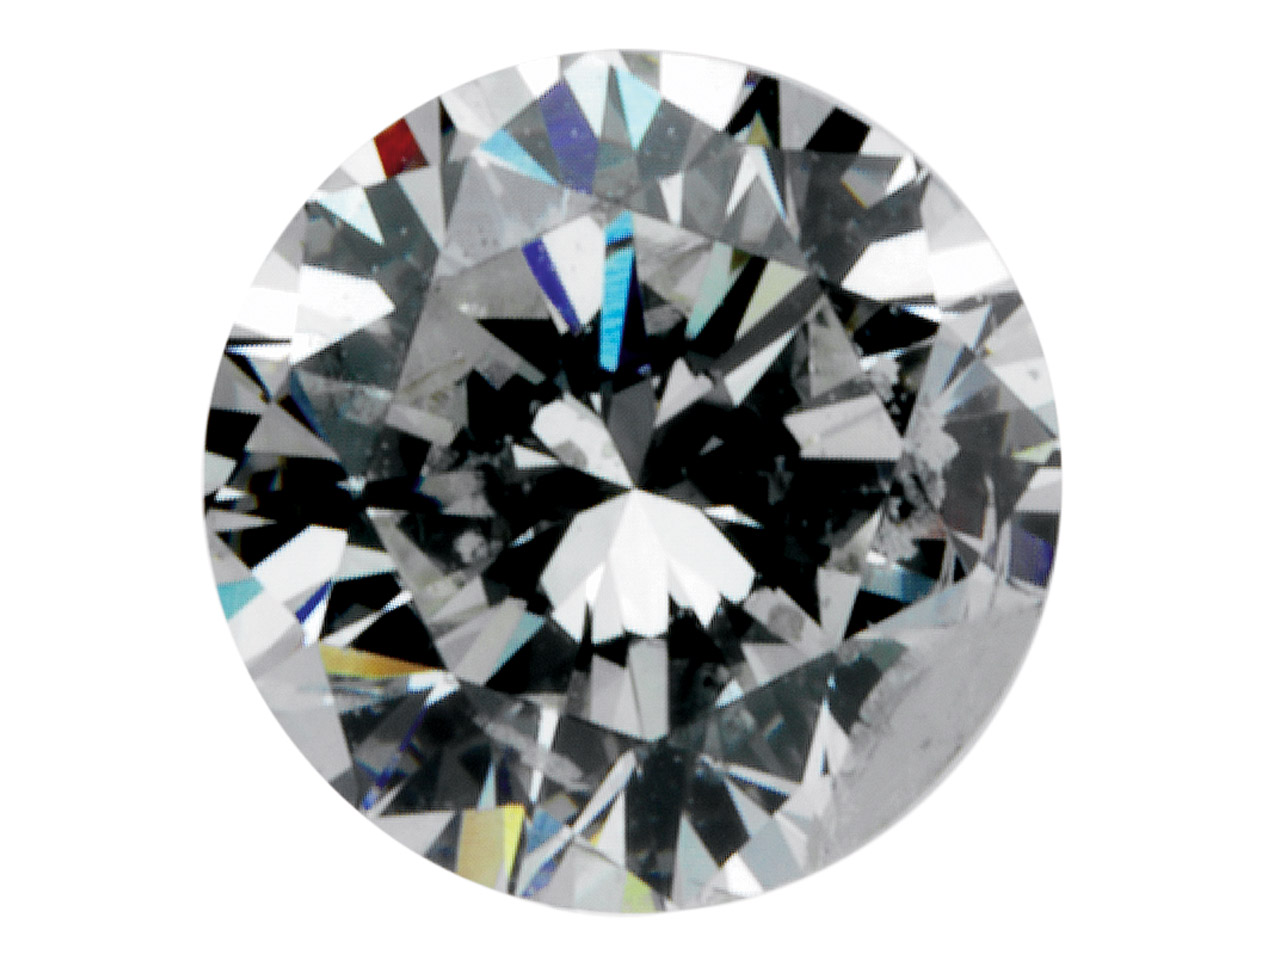 Diamond, Round, Hsi, 20pt3.75mm